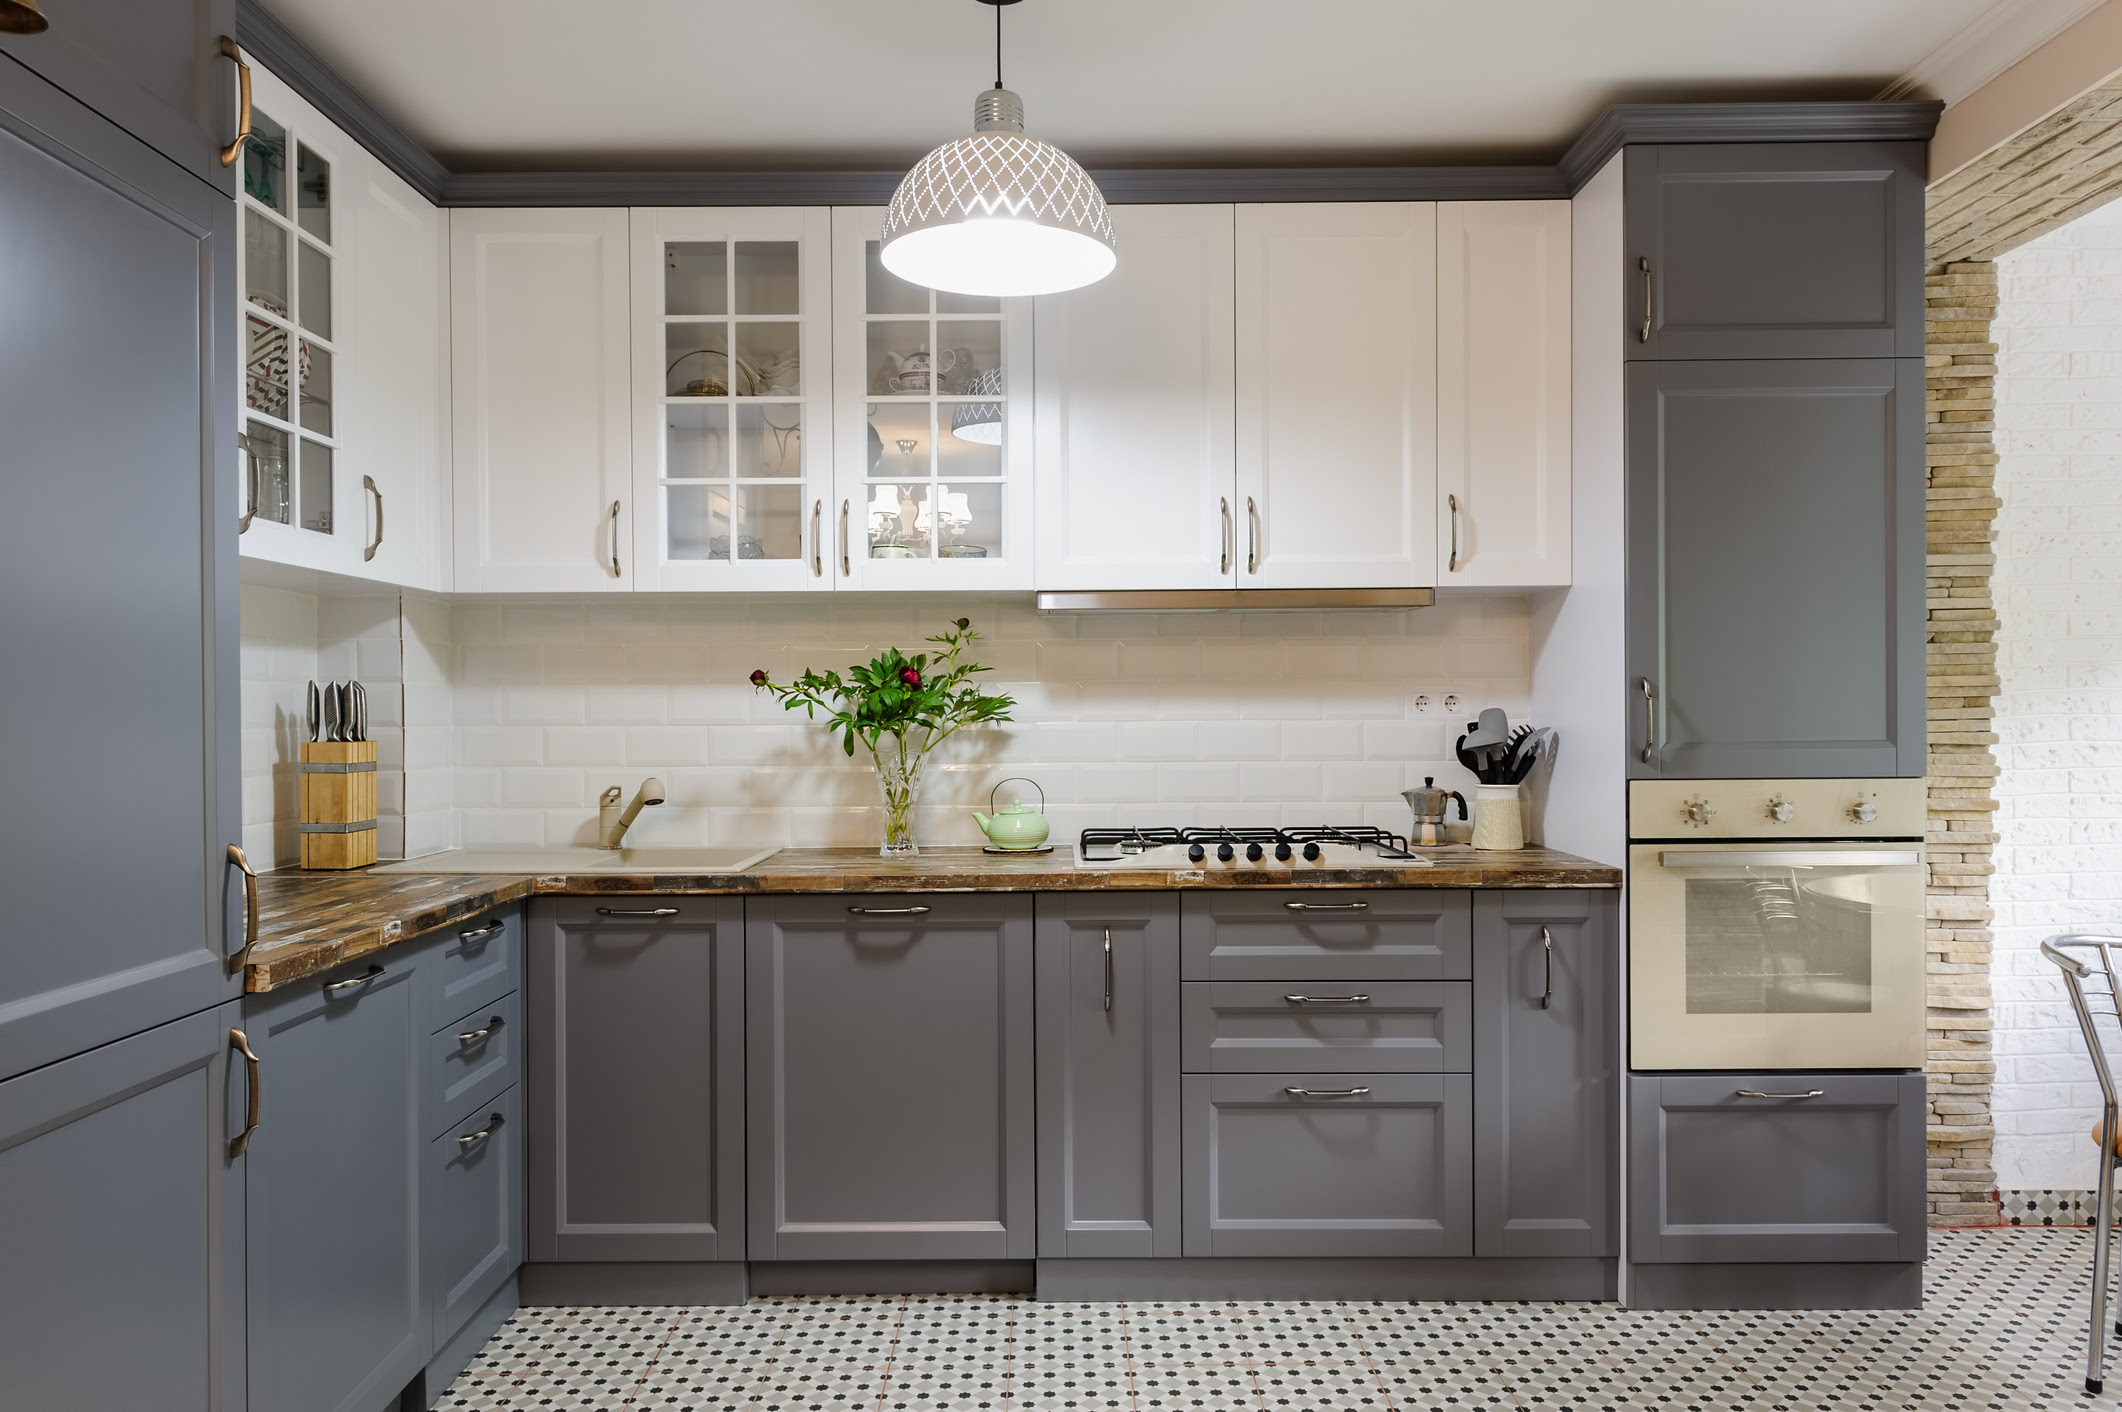 Kitchen Cabinet Colors of 2020   Desirable Kitchens and ...